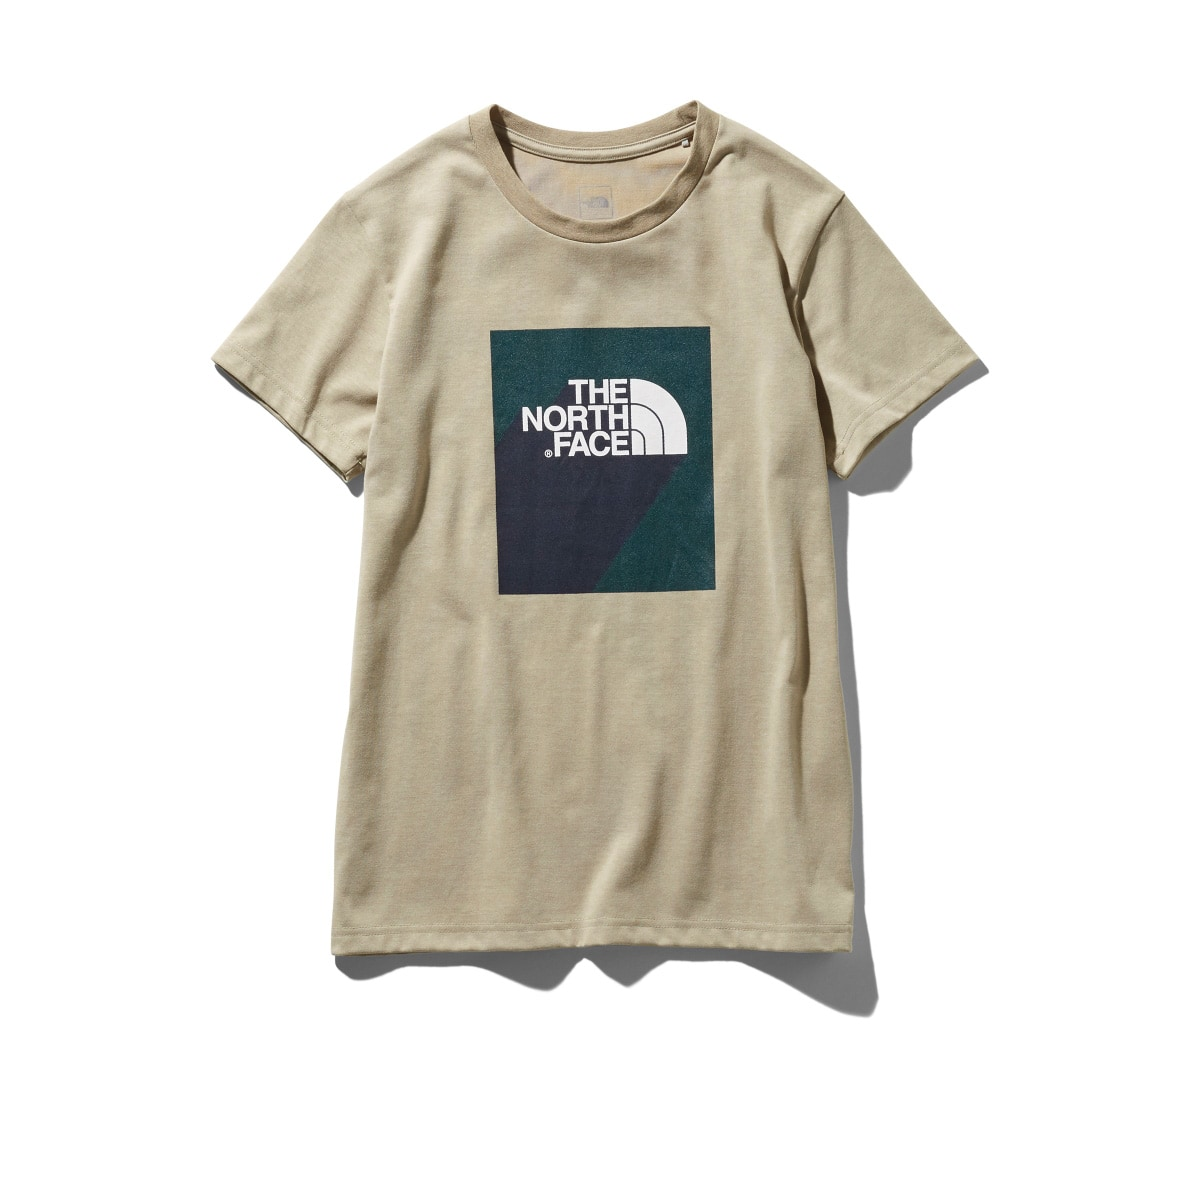 THE NORTH FACE S/S 3D LOGO TEE  ツイルベージュ 19SS-I_photo_large